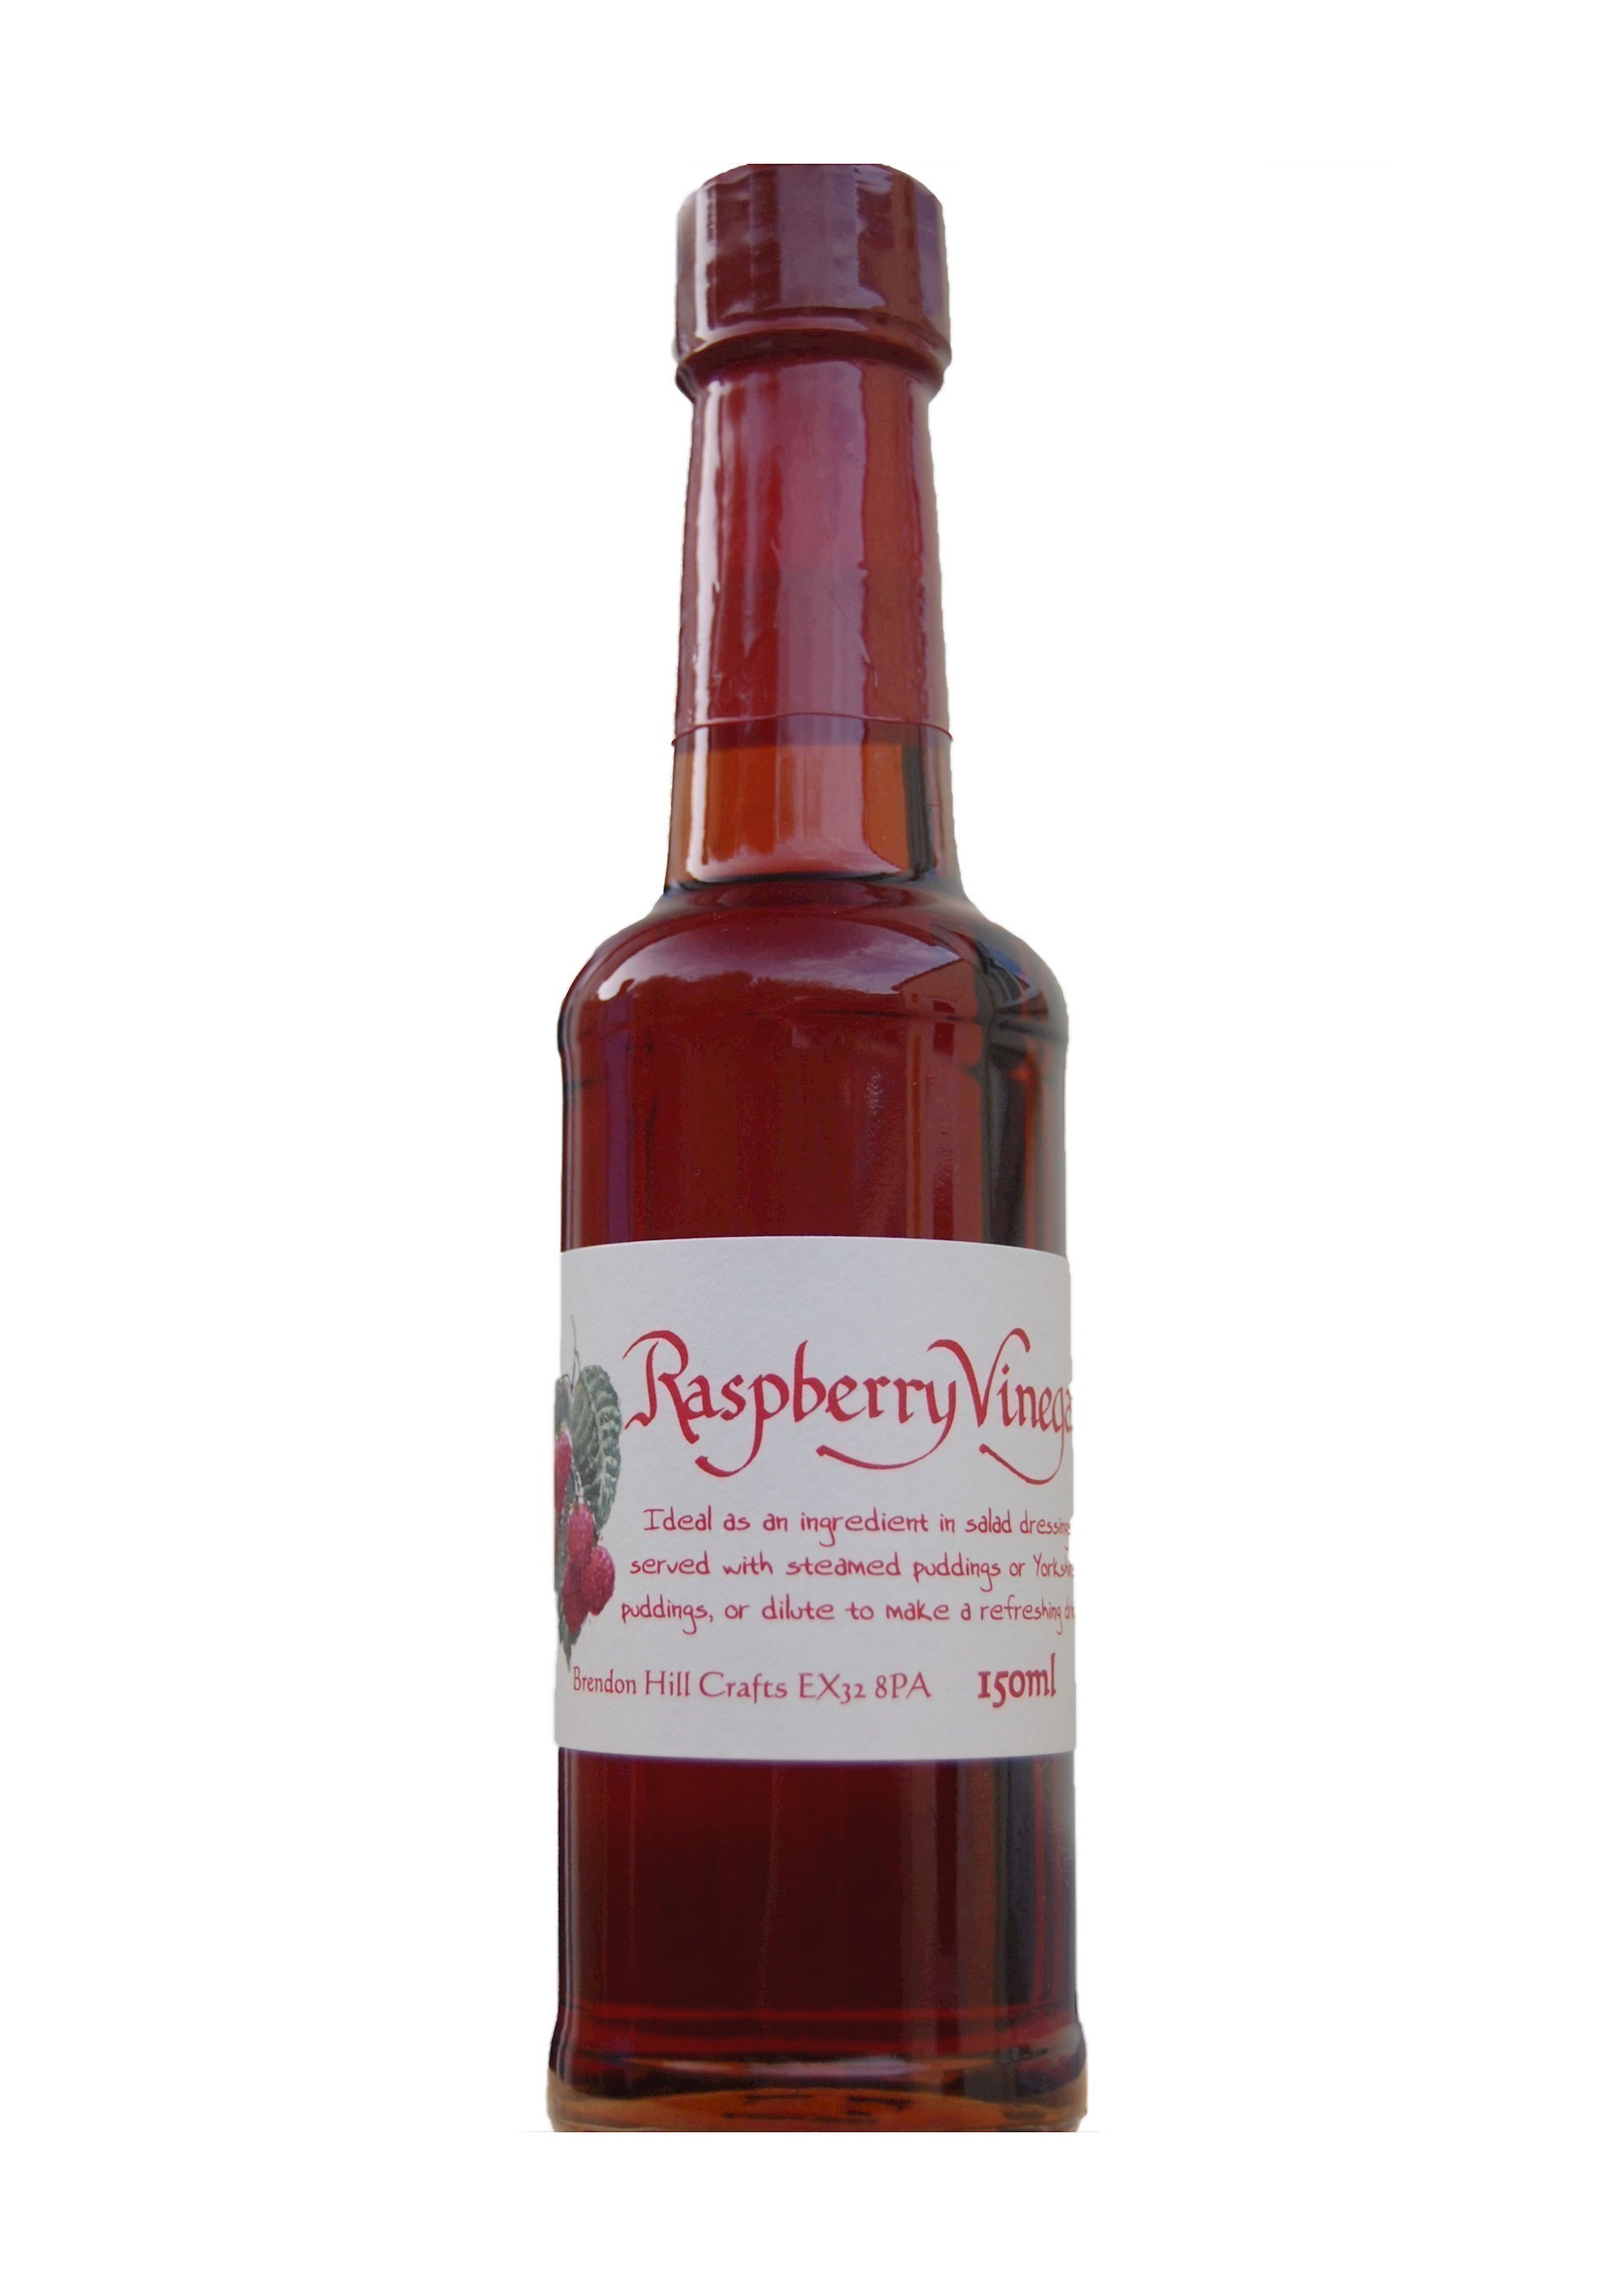 Brendon Hill Crafts Raspberry Vinegar